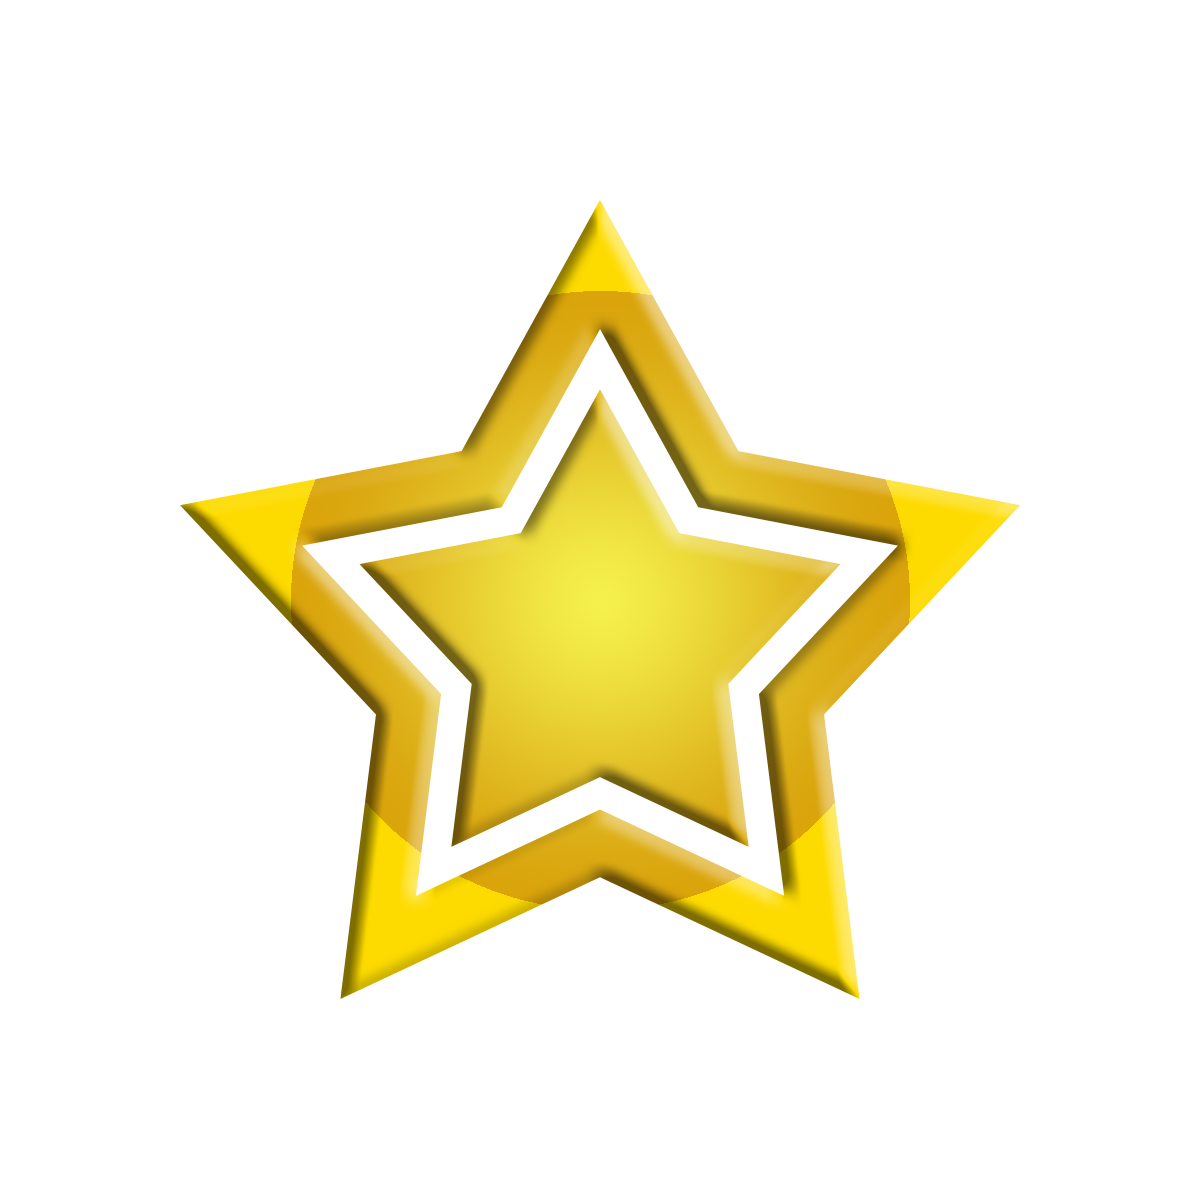 Free download high quality star transparent png without background image  Its a good quality stylish star transparent png image with no ba